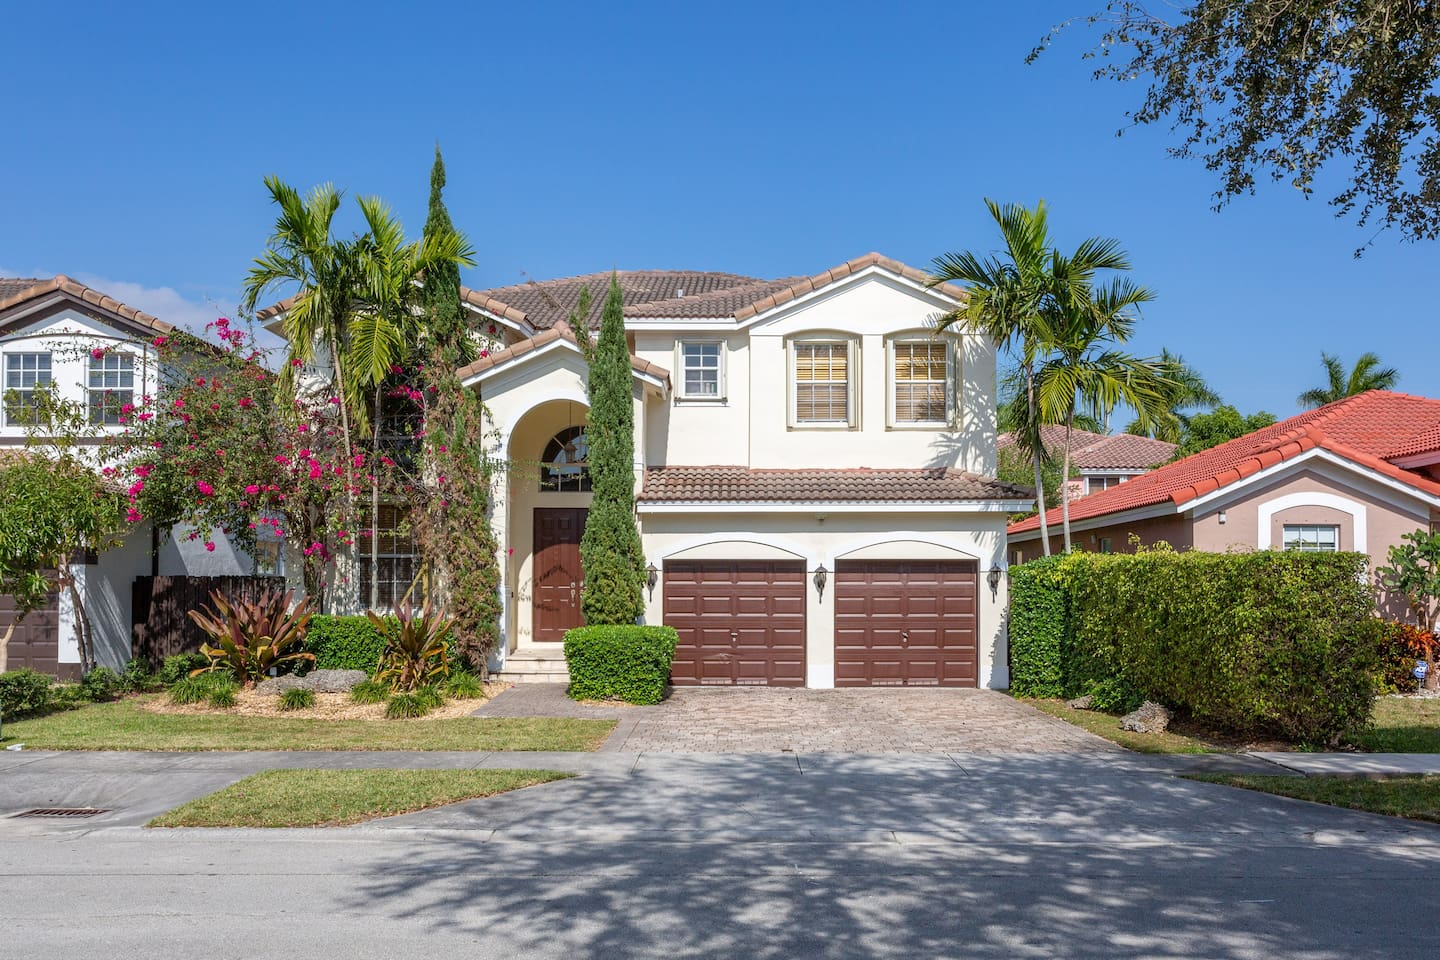 Look no more! Let this be the house where you spend your next vacation in Miami! Fully equipped with plenty of amenities; our spacious and centrally located vacation property will leave you amazed from the moment you walk in.